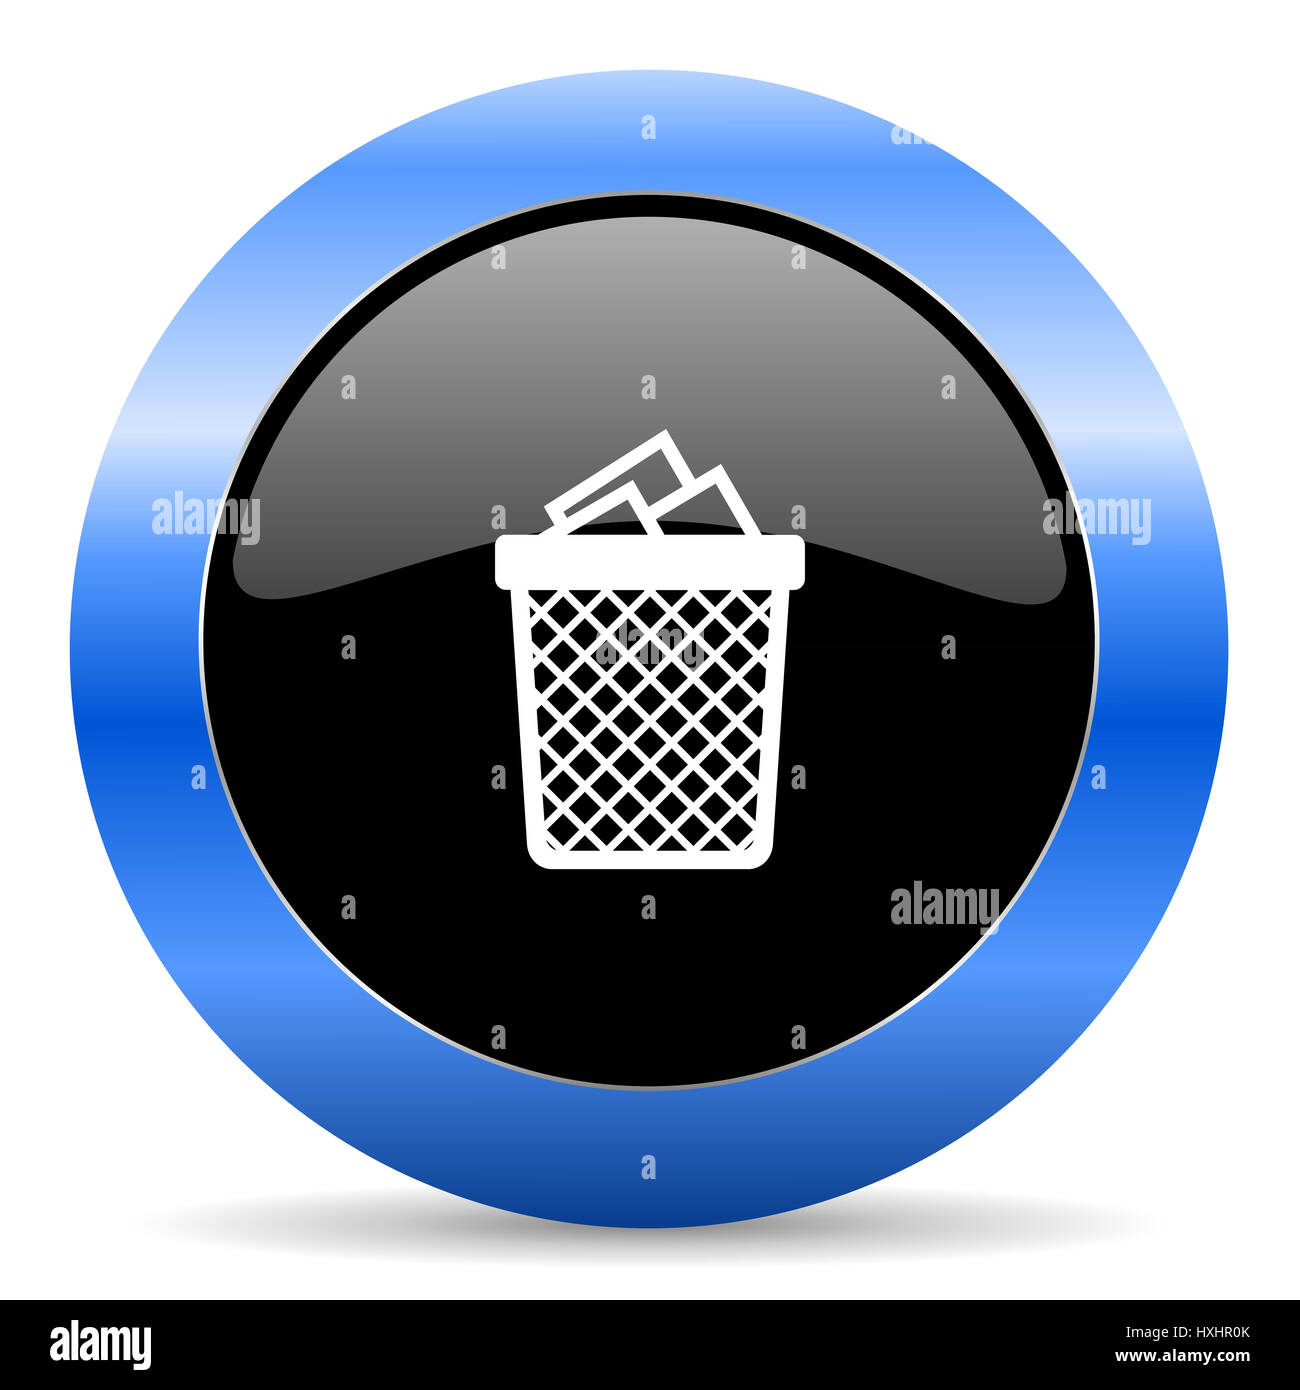 Trash can black and blue web design round internet icon with shadow on white background. - Stock Image